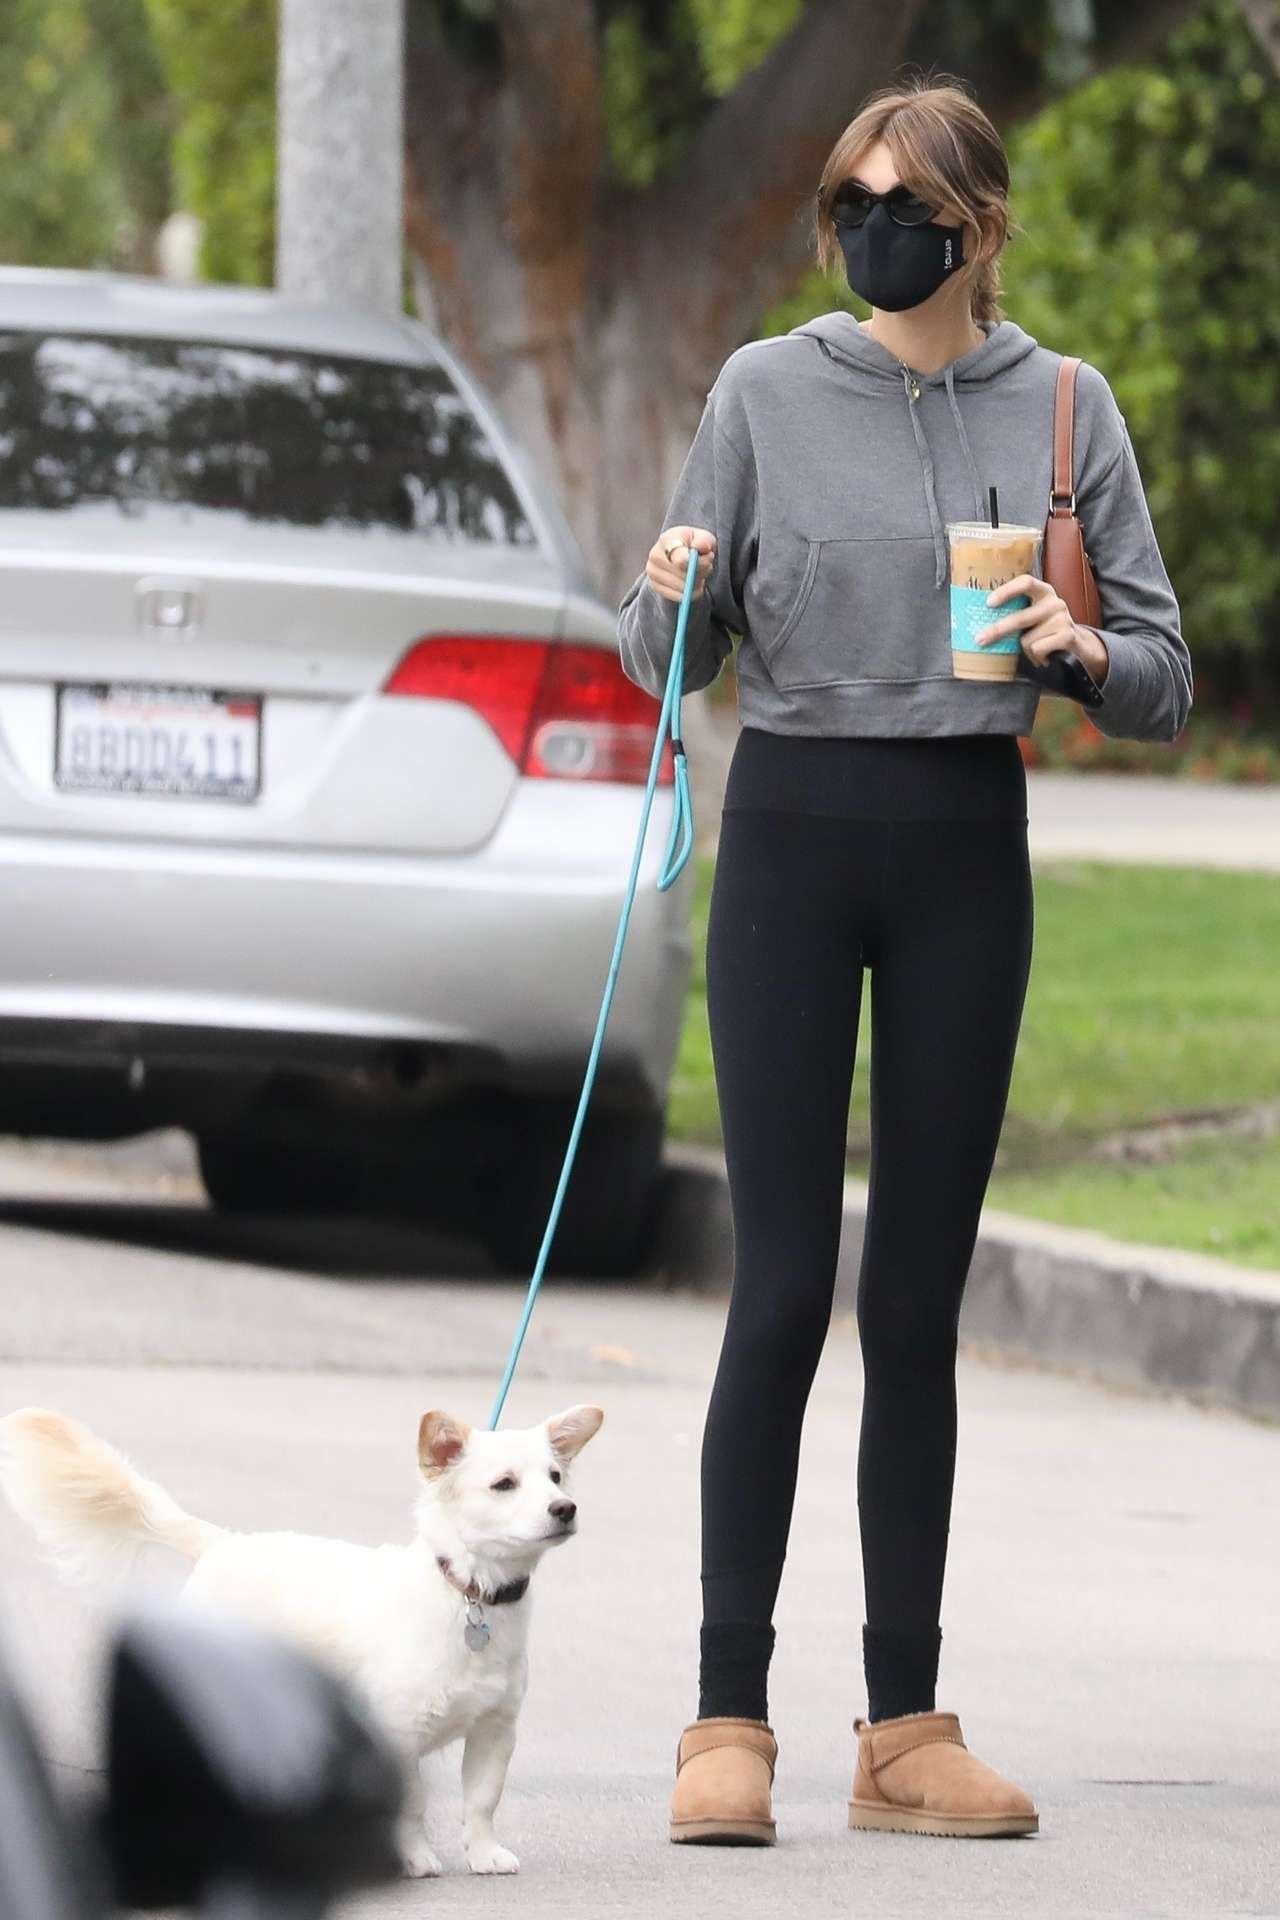 Cara Delevingne and Kaia Gerber Booty in Tights, Out in Los Angeles